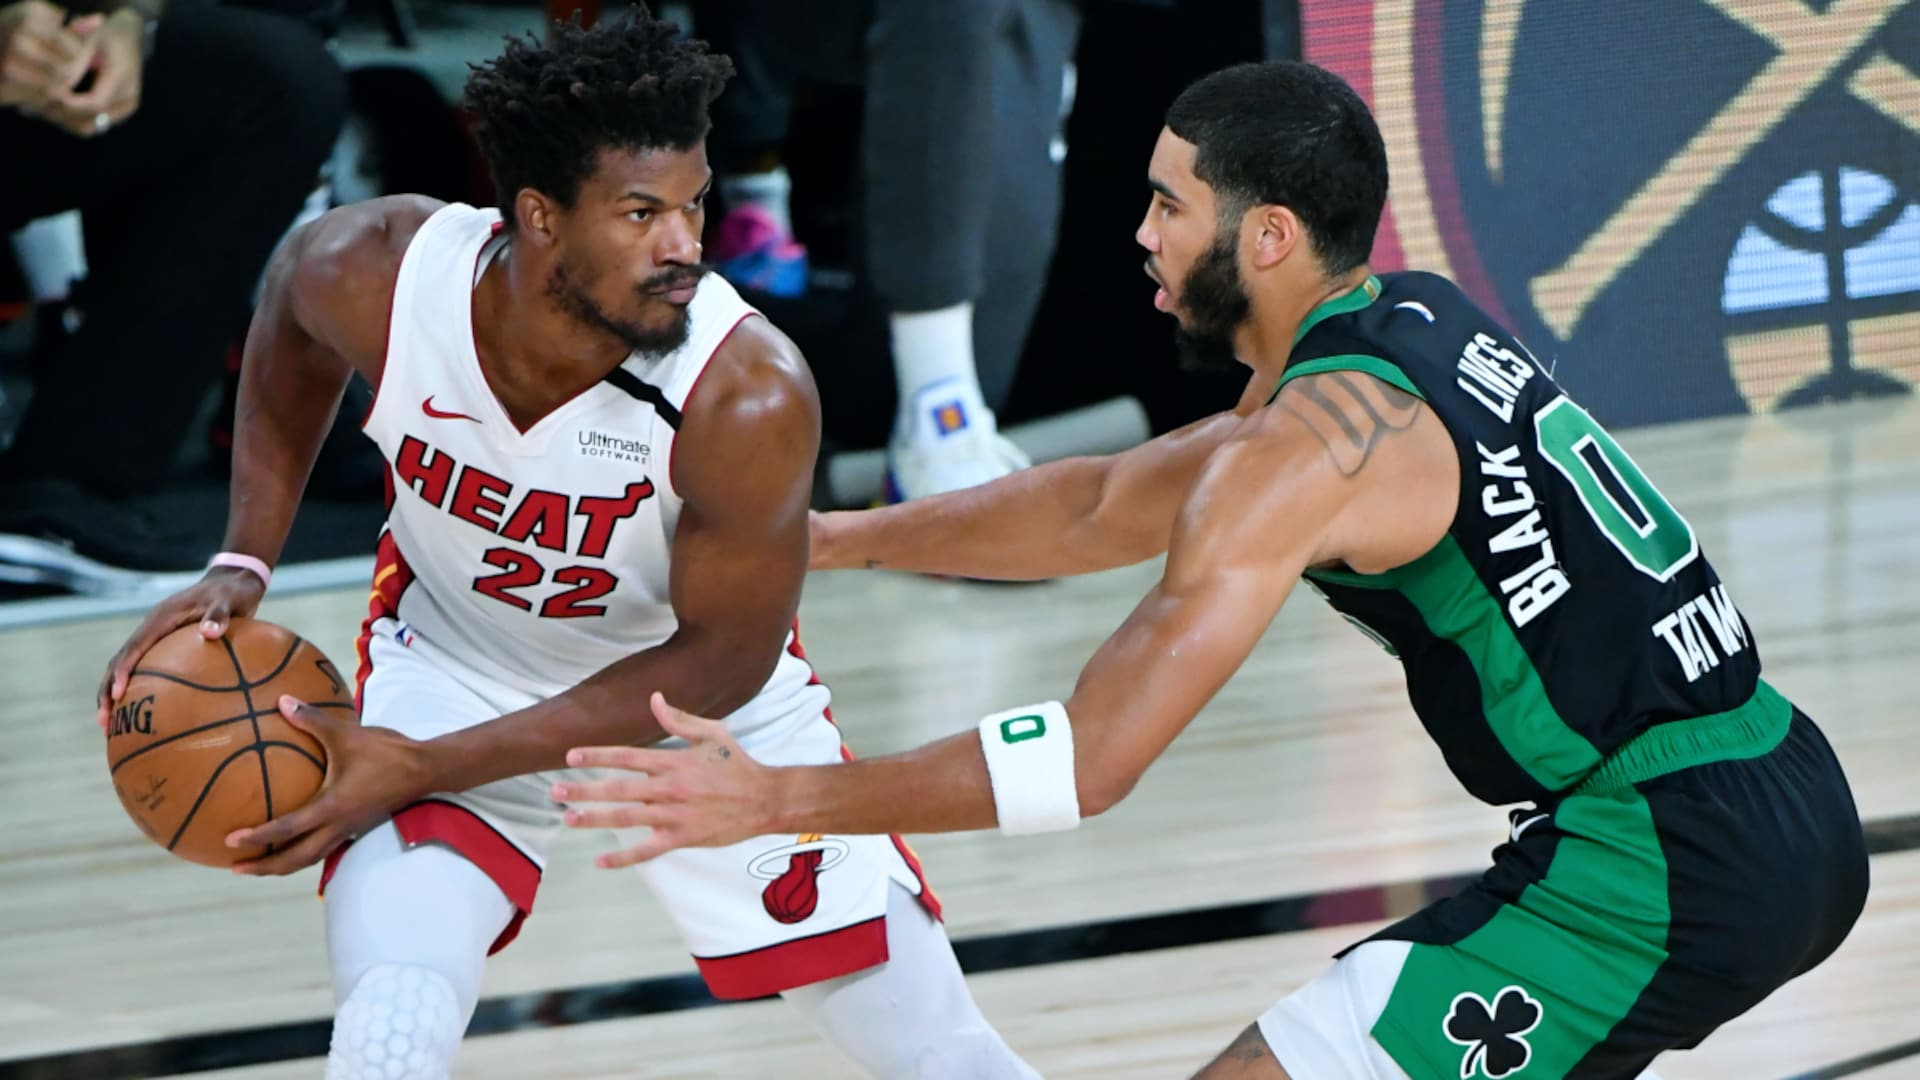 'Heat culture' will be tested by resurgent Celtics in Game 6